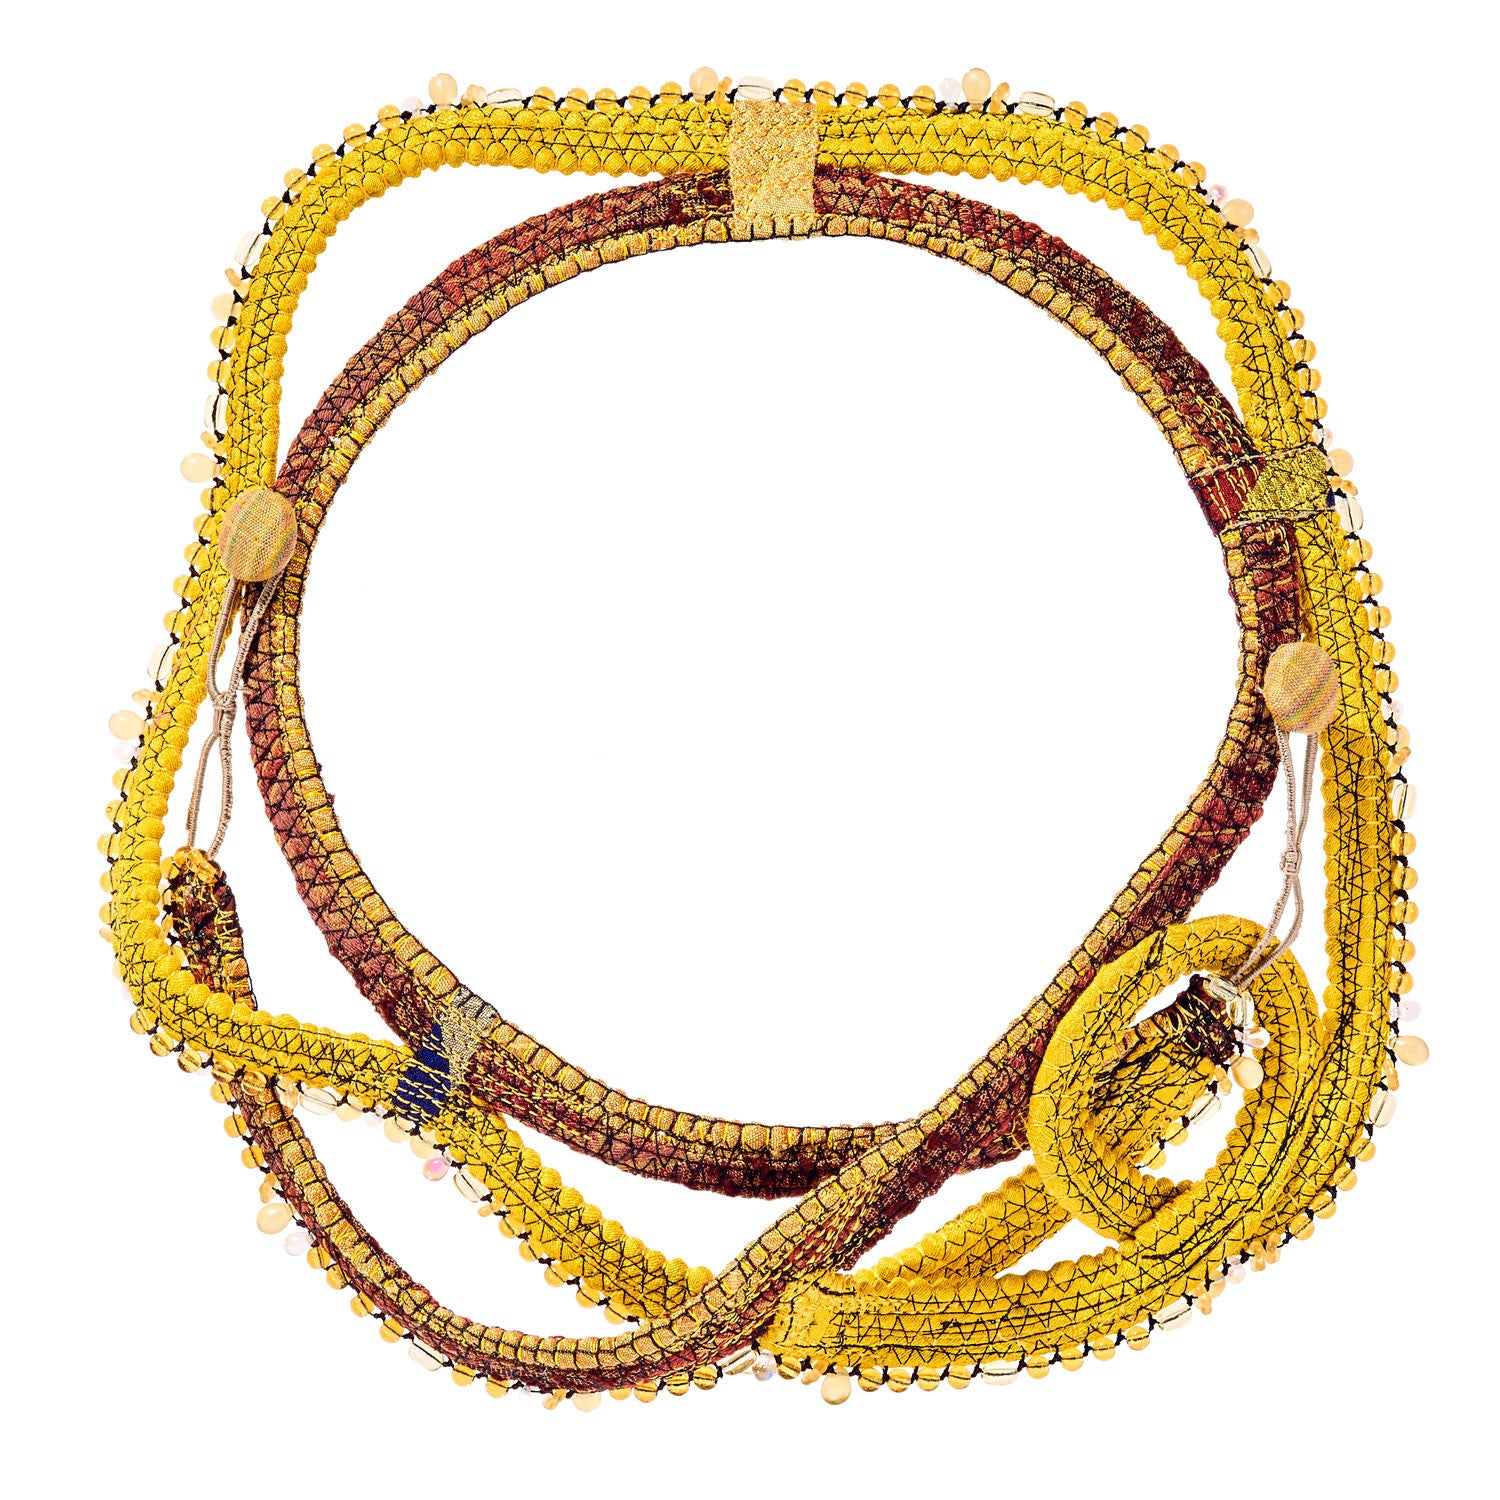 Golden Nest Collar